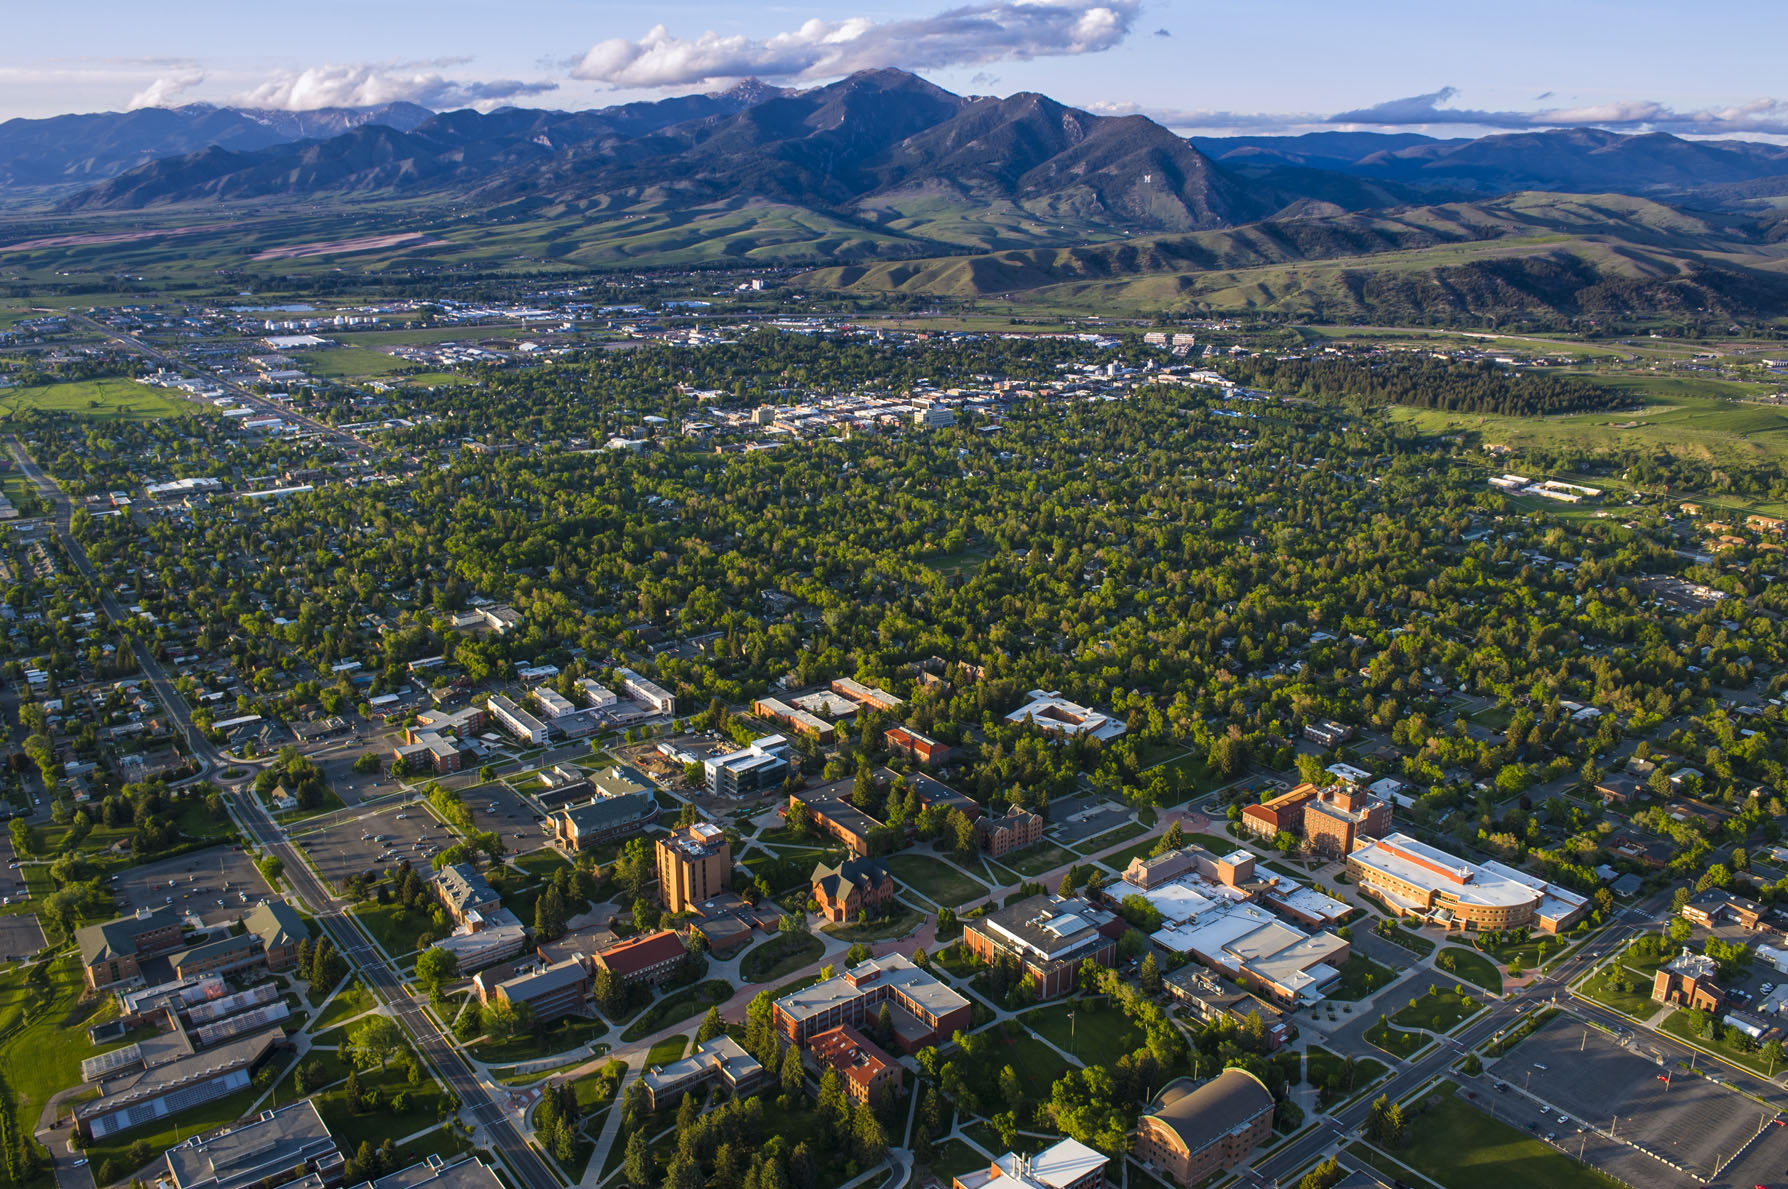 An areal view of Bozeman Montana